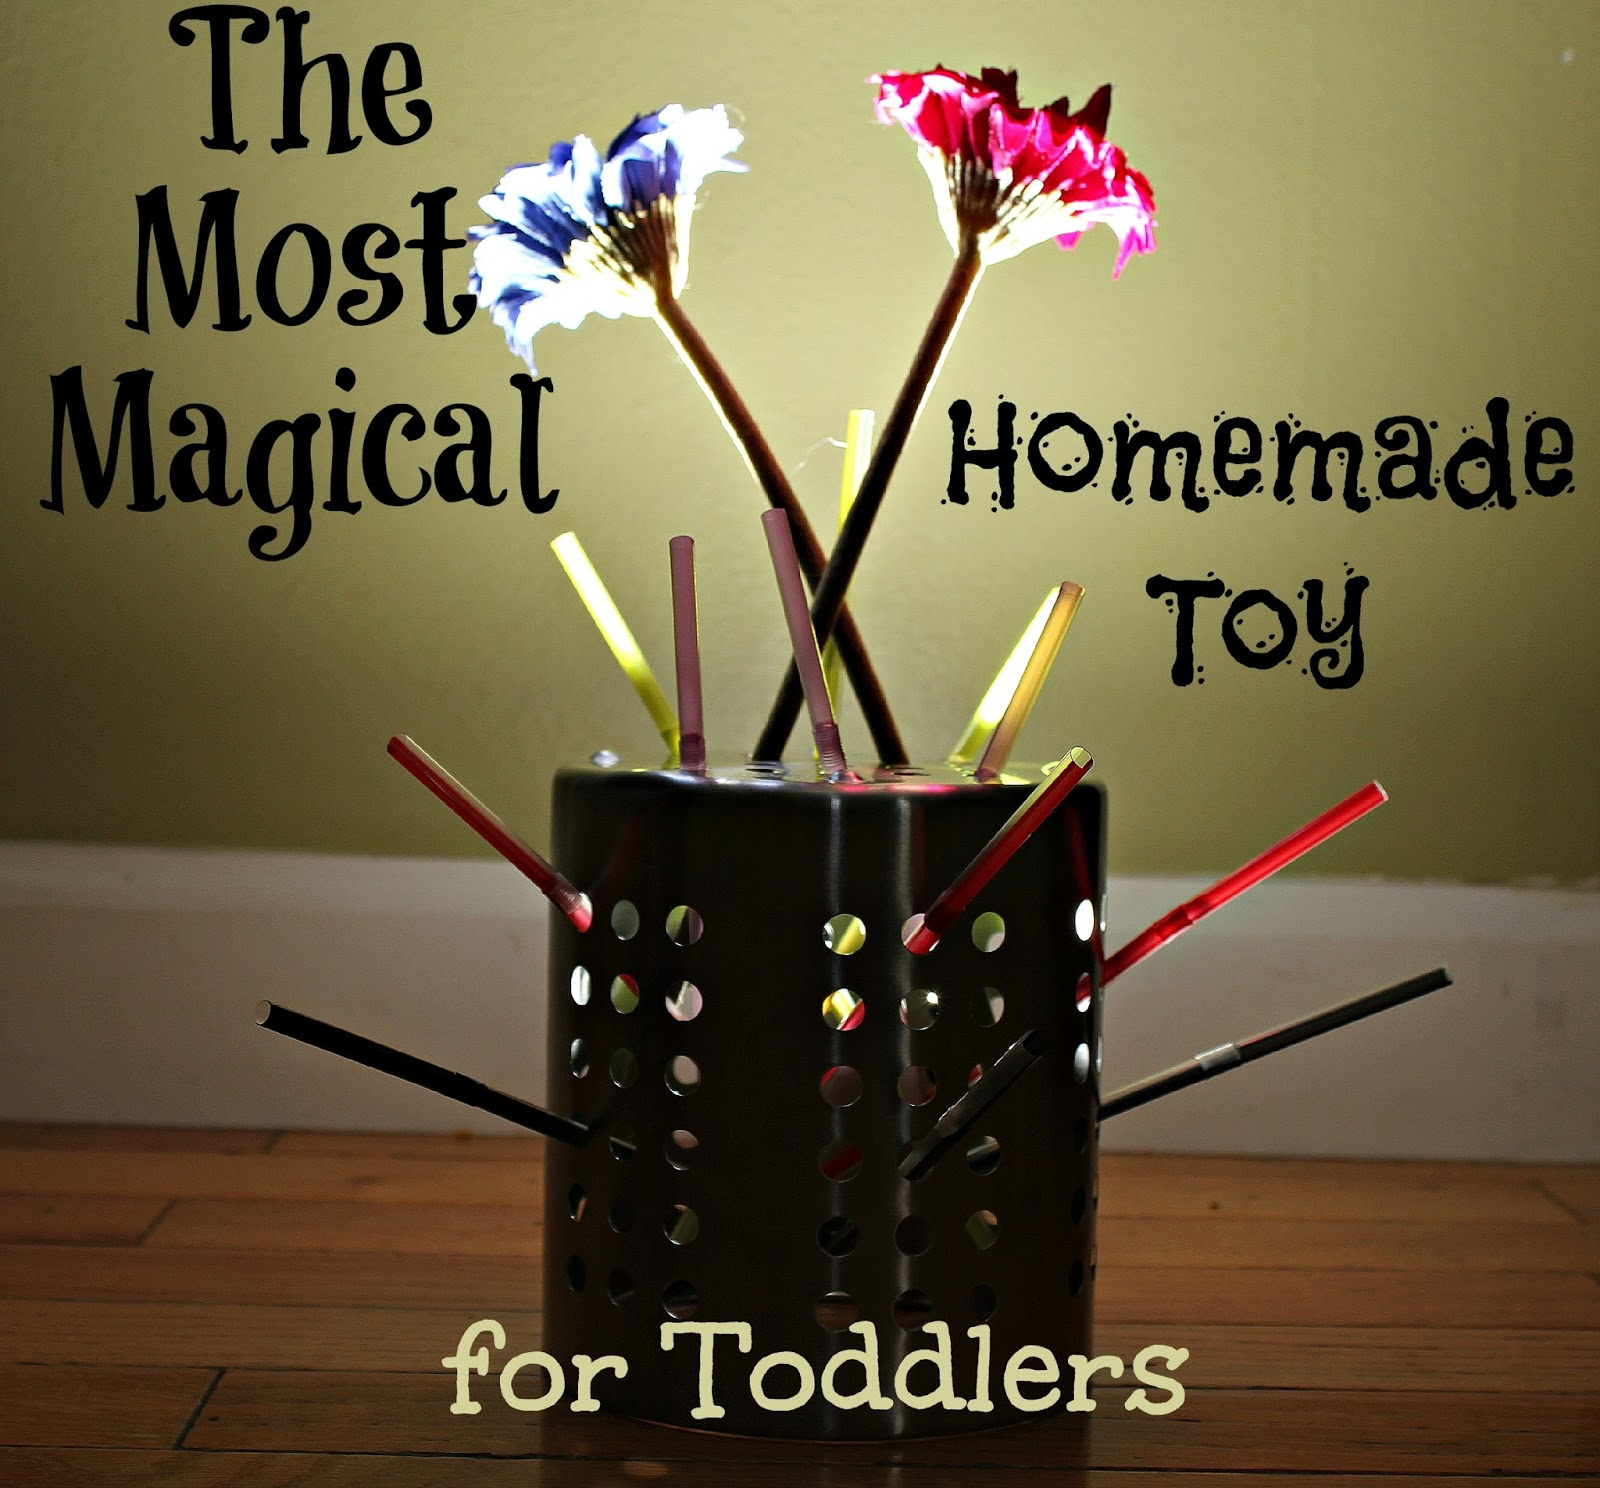 Most Magical Homemade Toy for Toddlers